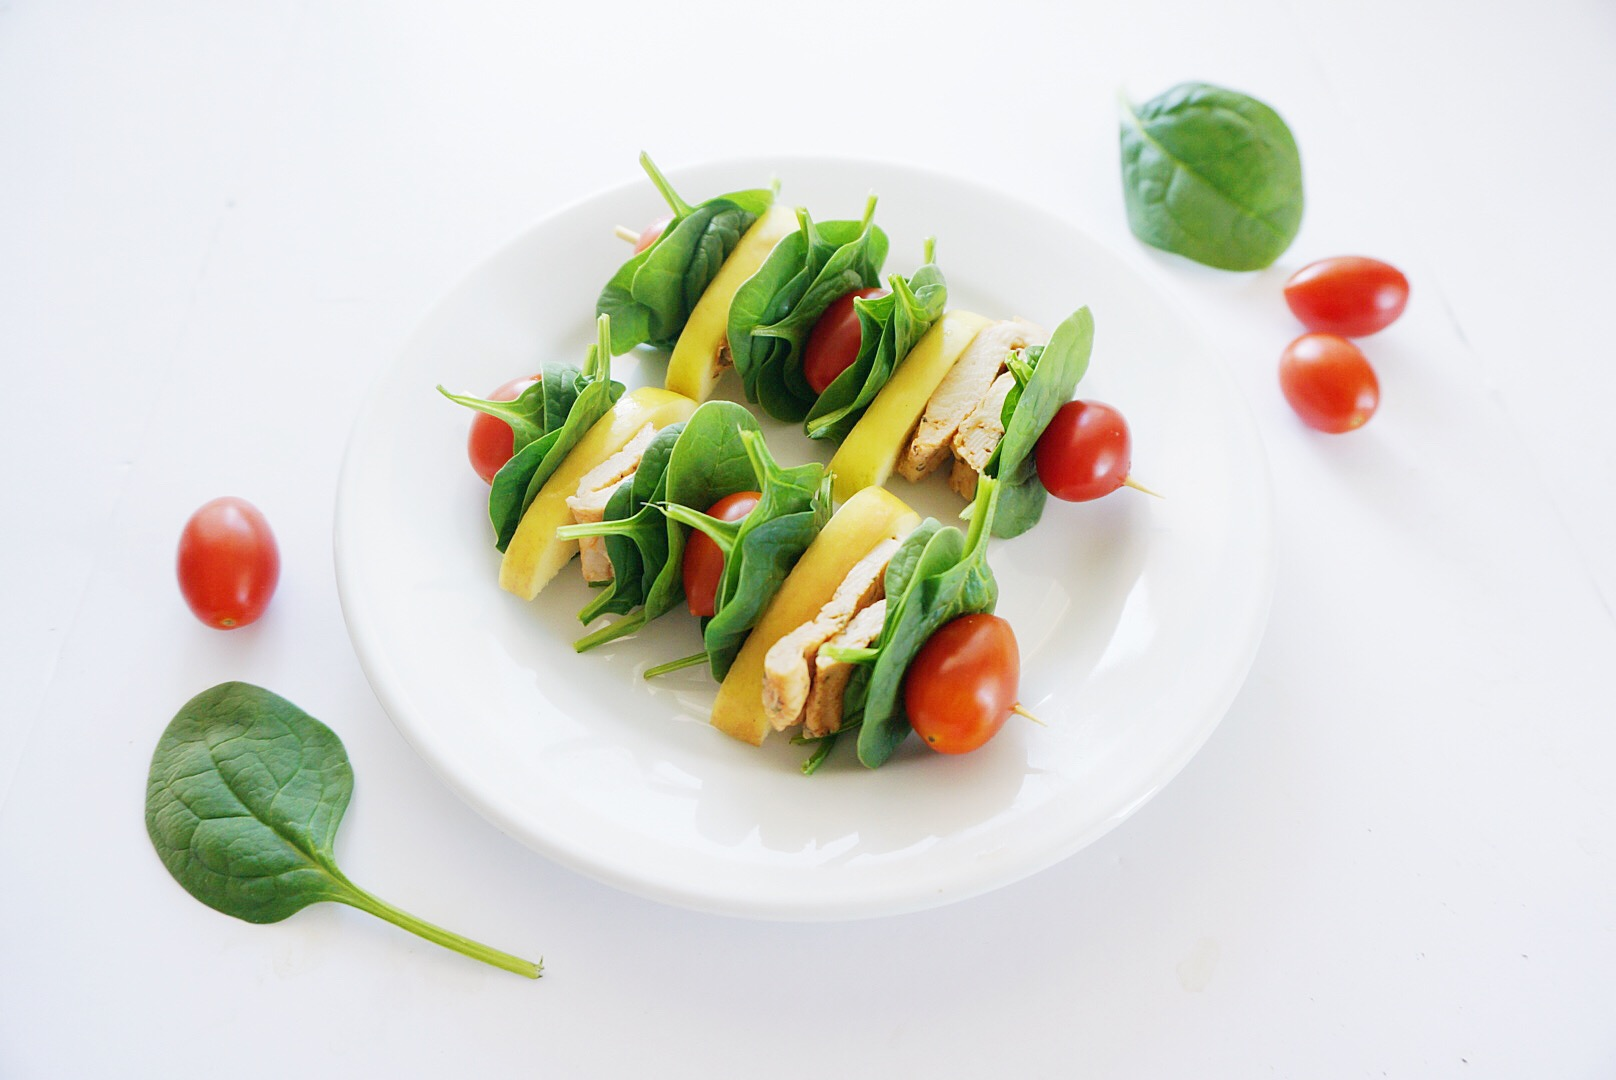 Skewers on a white plate with chicken and salad on them